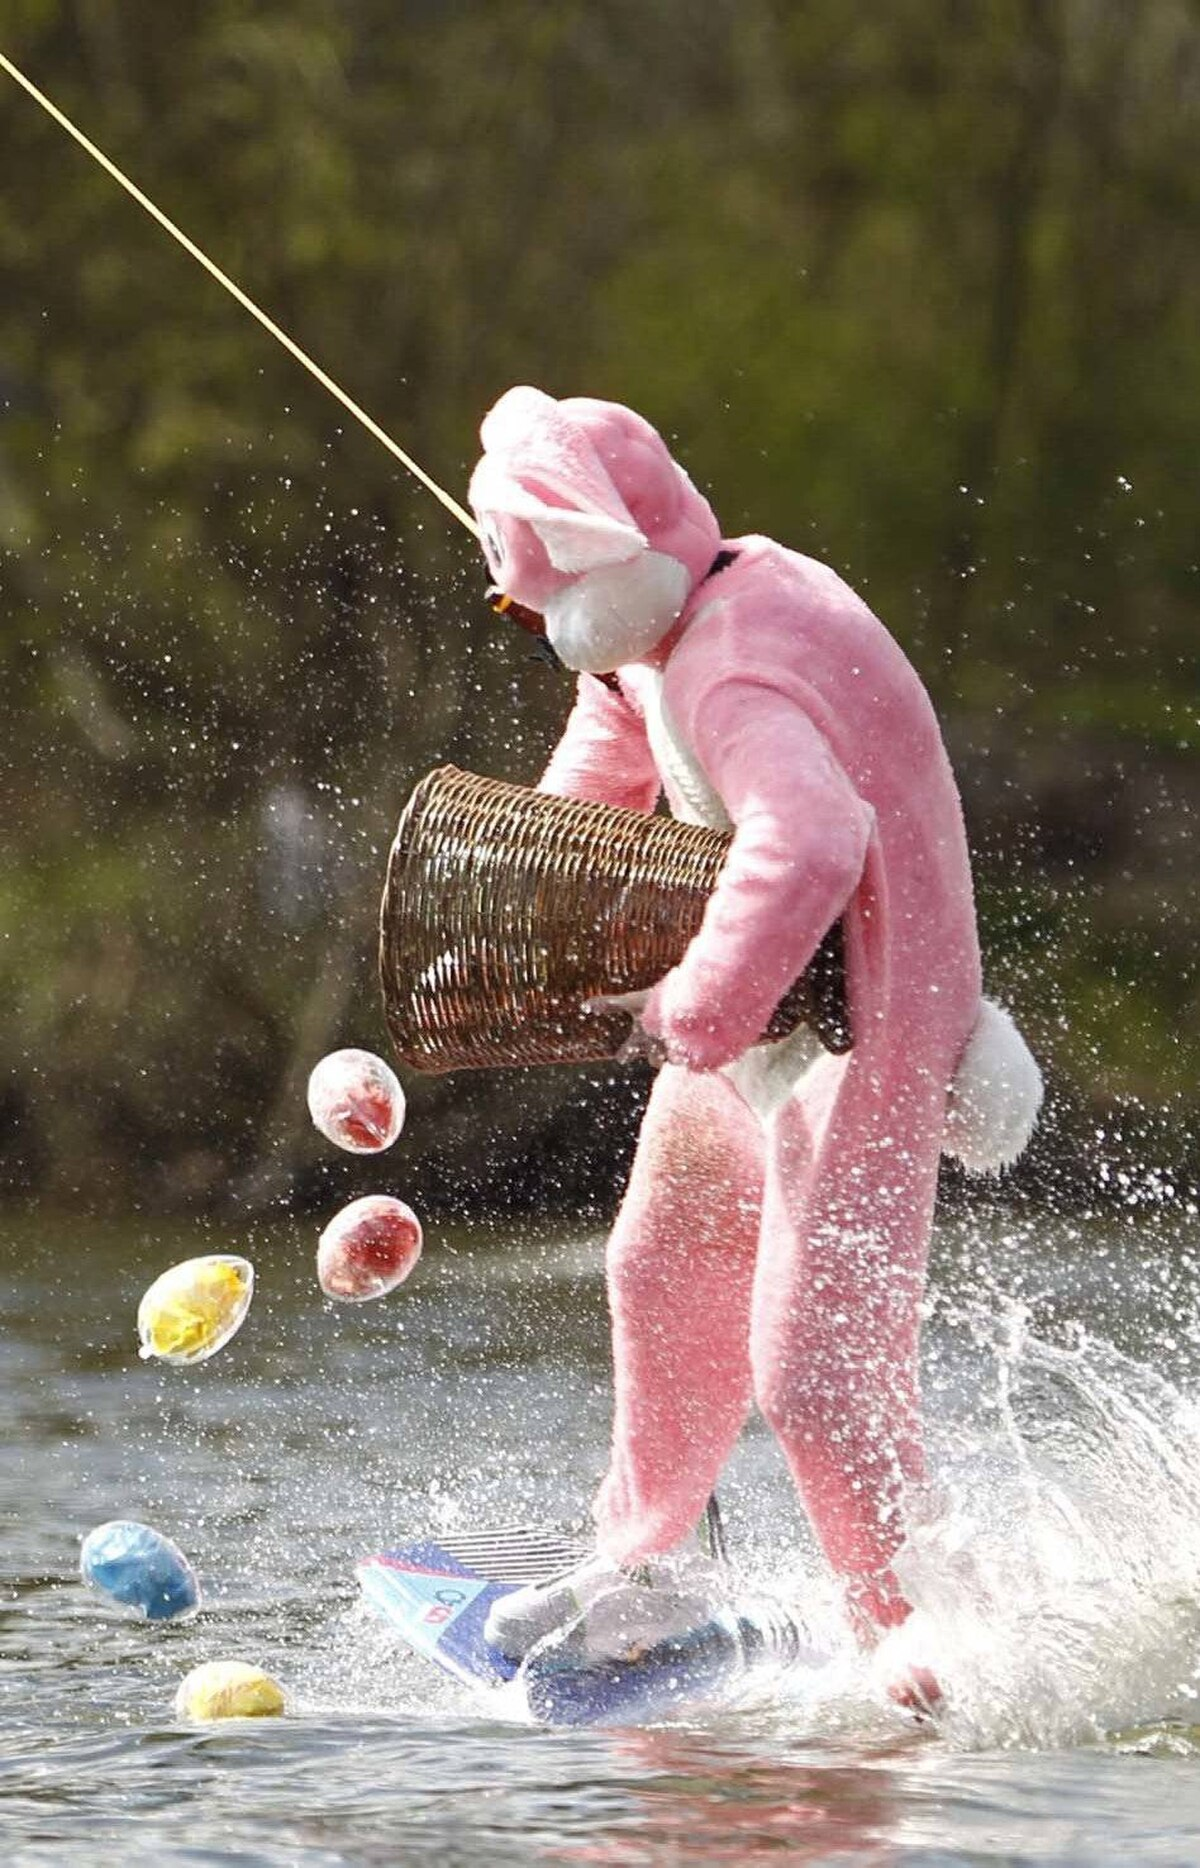 And meanwhile back in Germany, our pink bunny is now carpet-bombing the lake with plastic eggs. Because that's what Jesus would do.